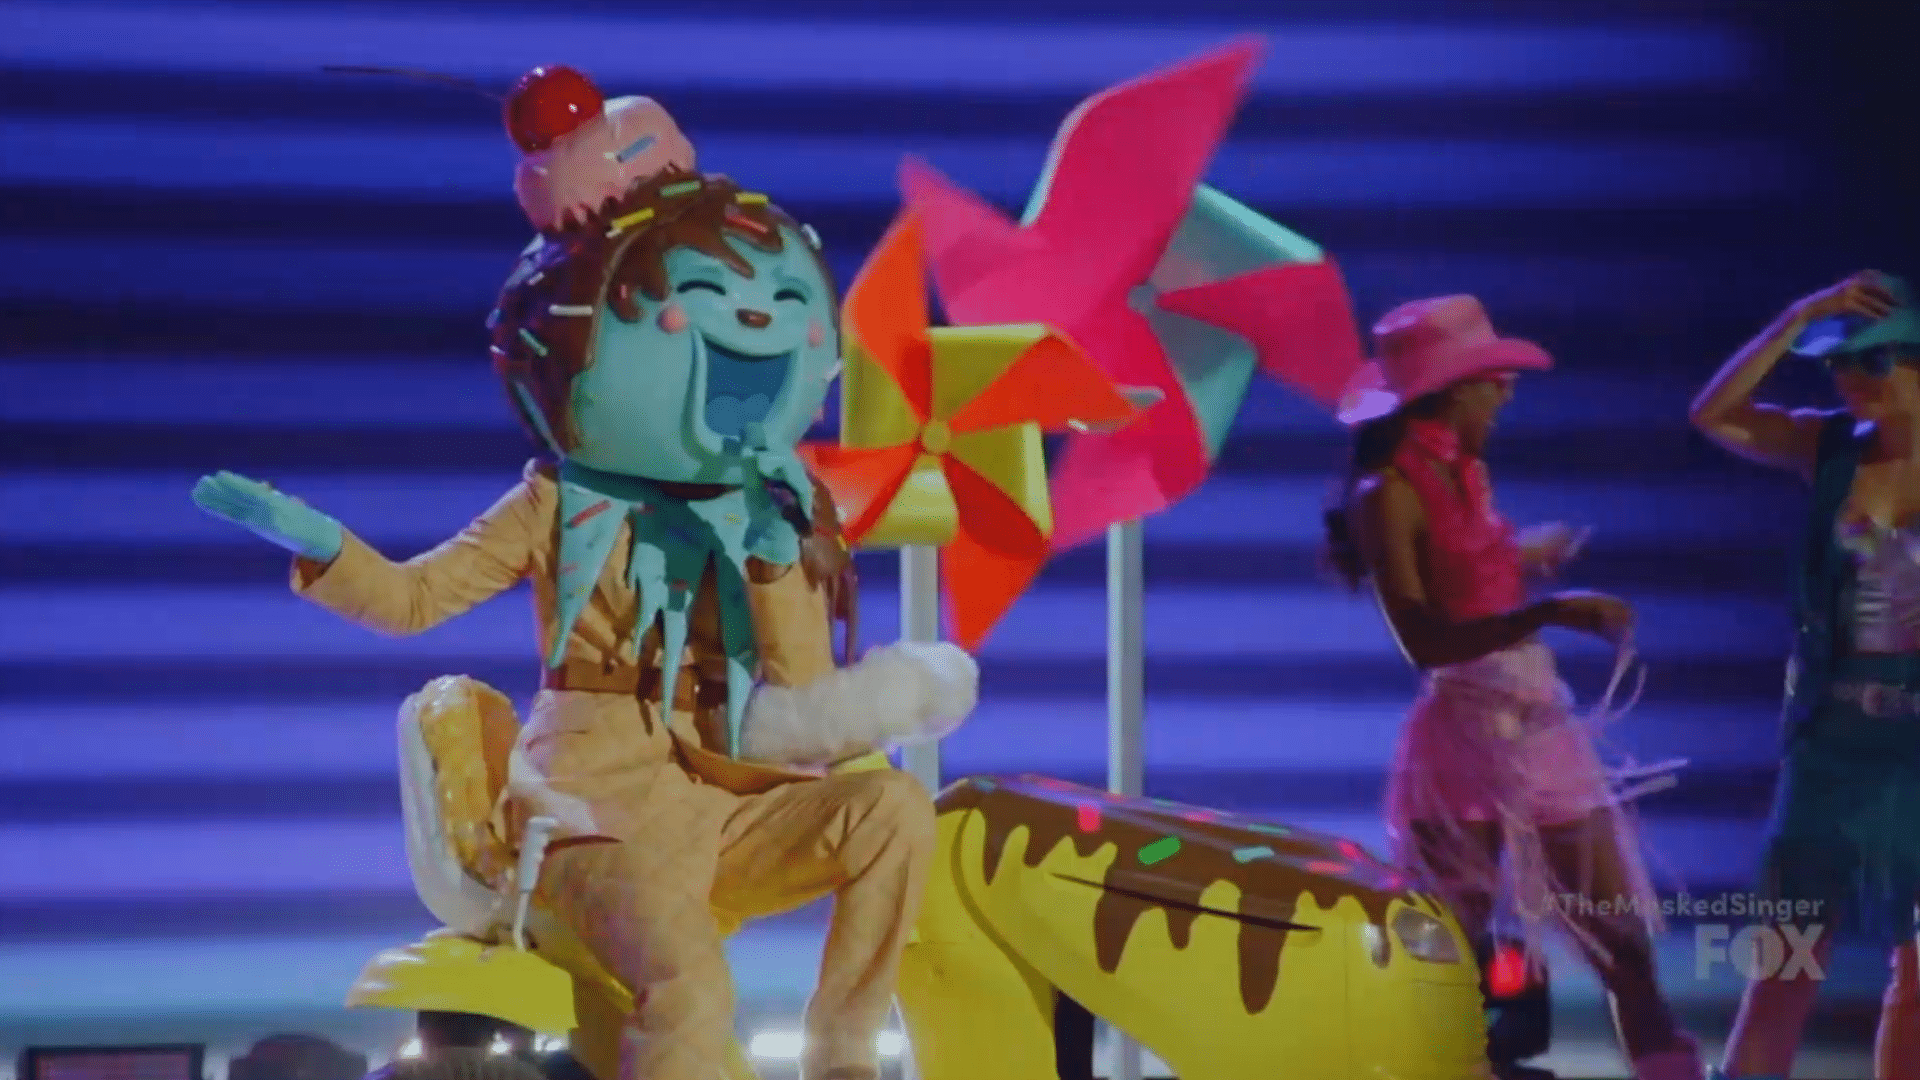 ' Masked Singer ' presents characters and displays the first set of Season 2 clues